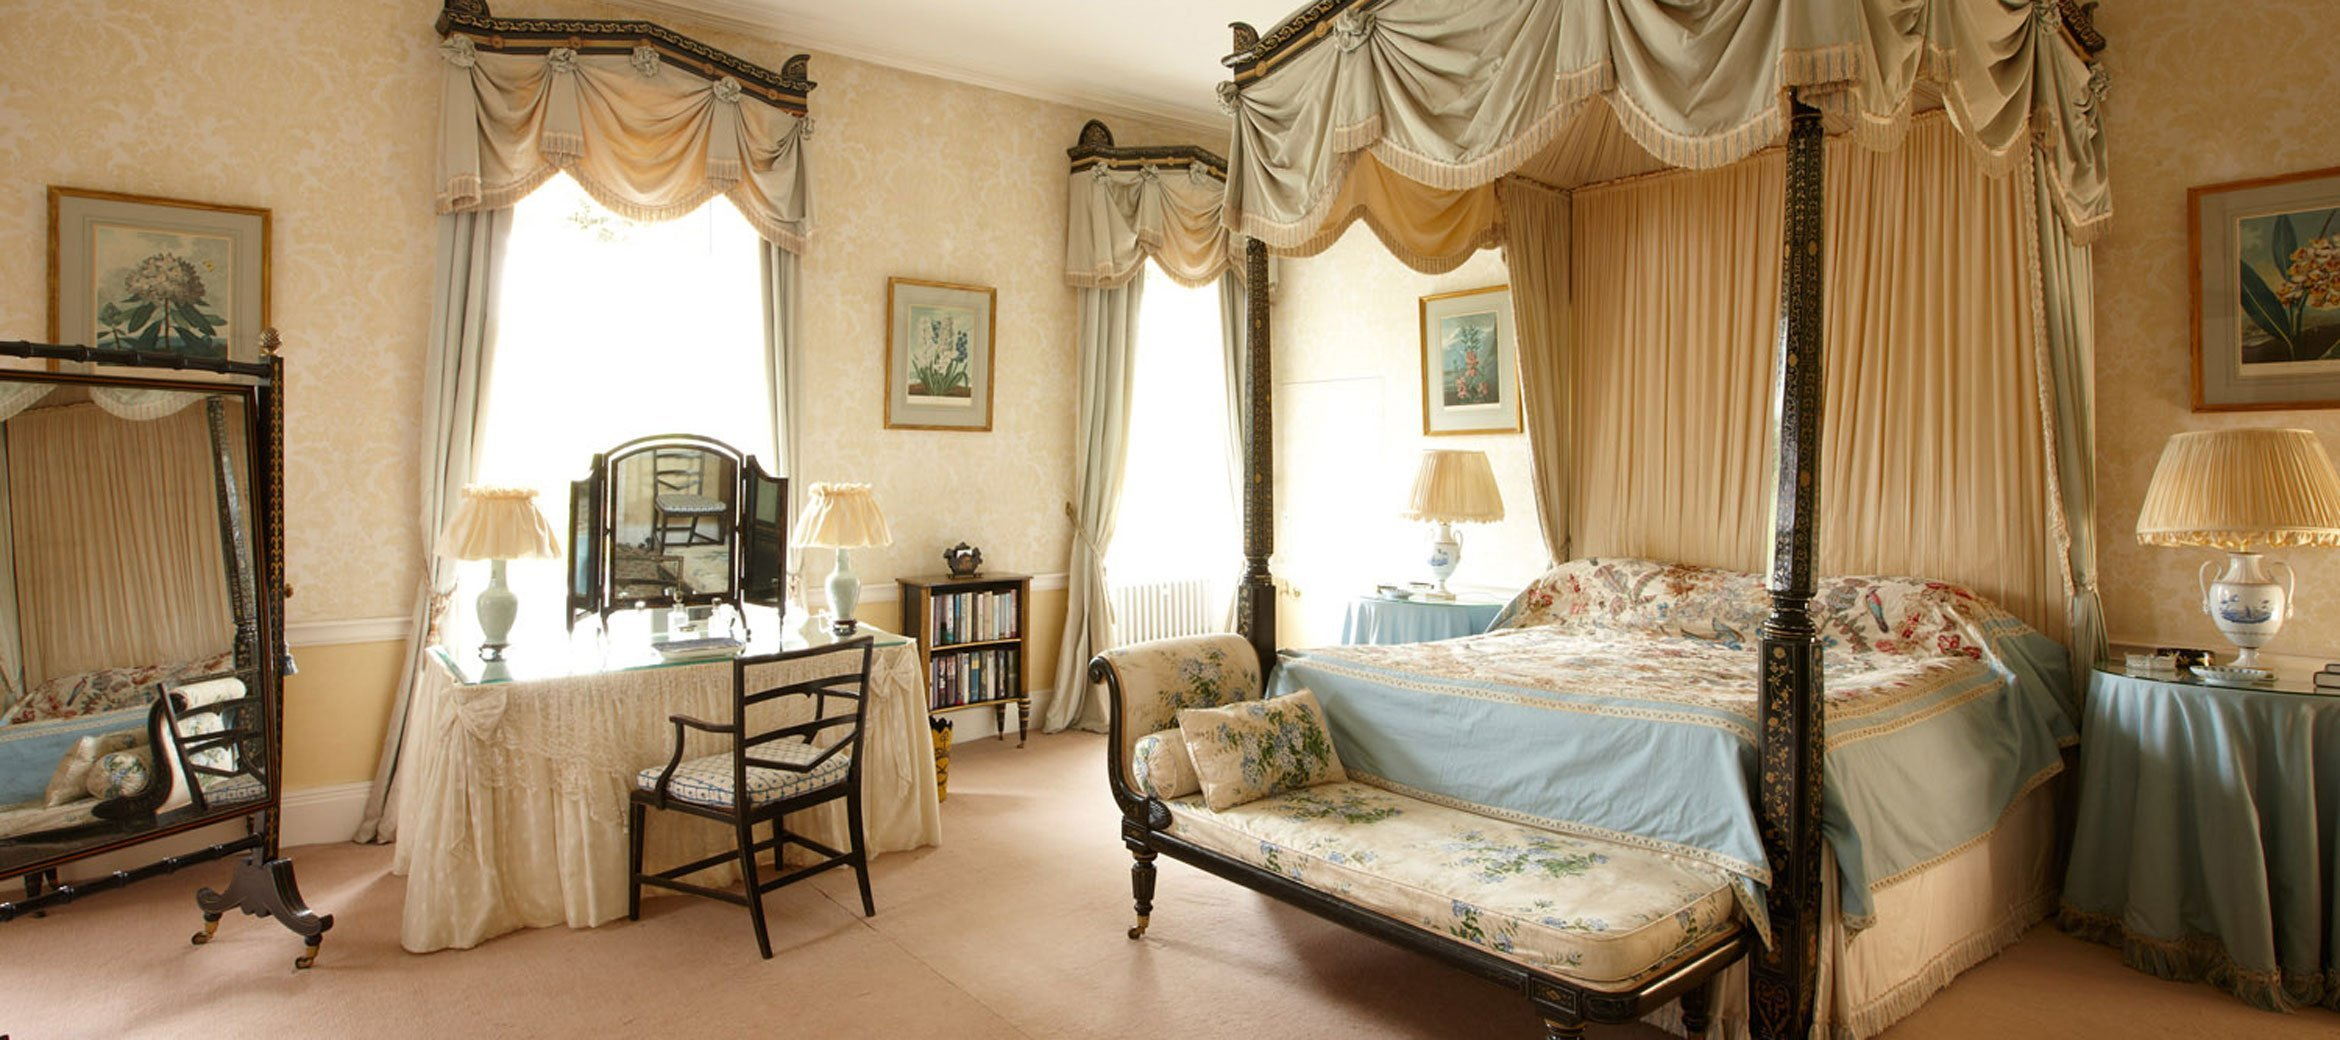 cornwell-manor-double-bedroom